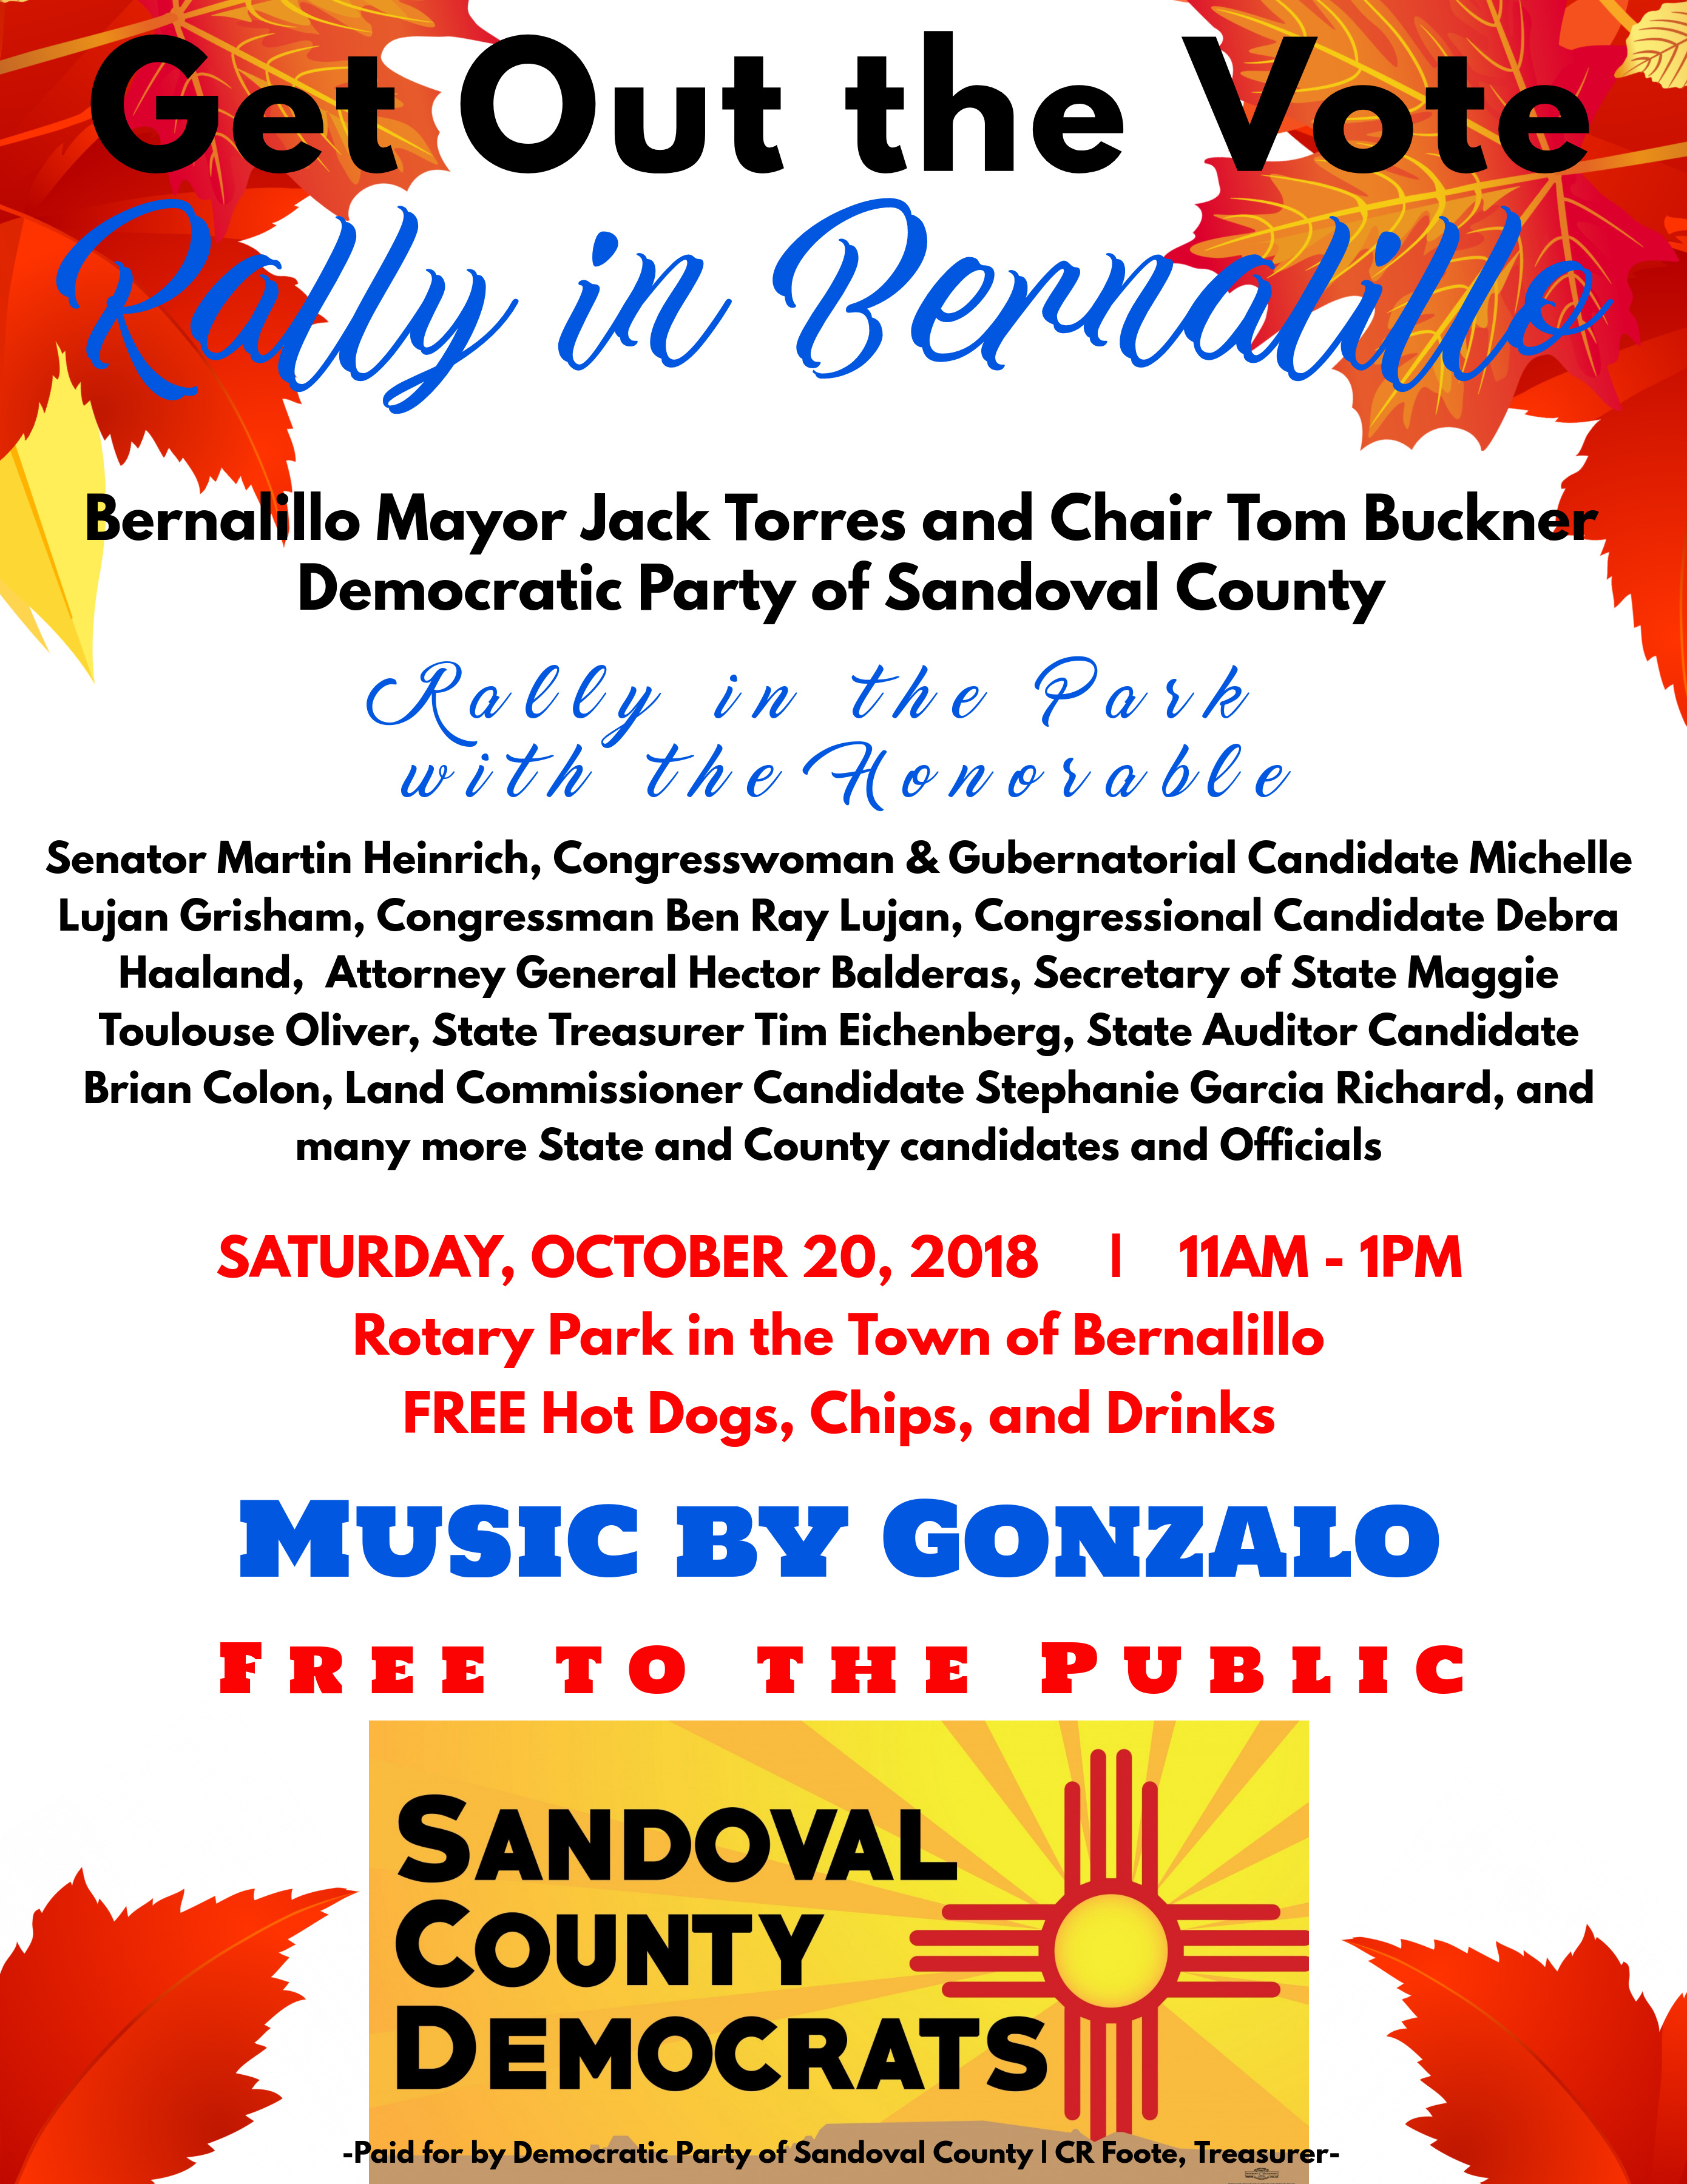 Get Out the Vote Rally in Bernalillo @ Bernalillo | New Mexico | United States